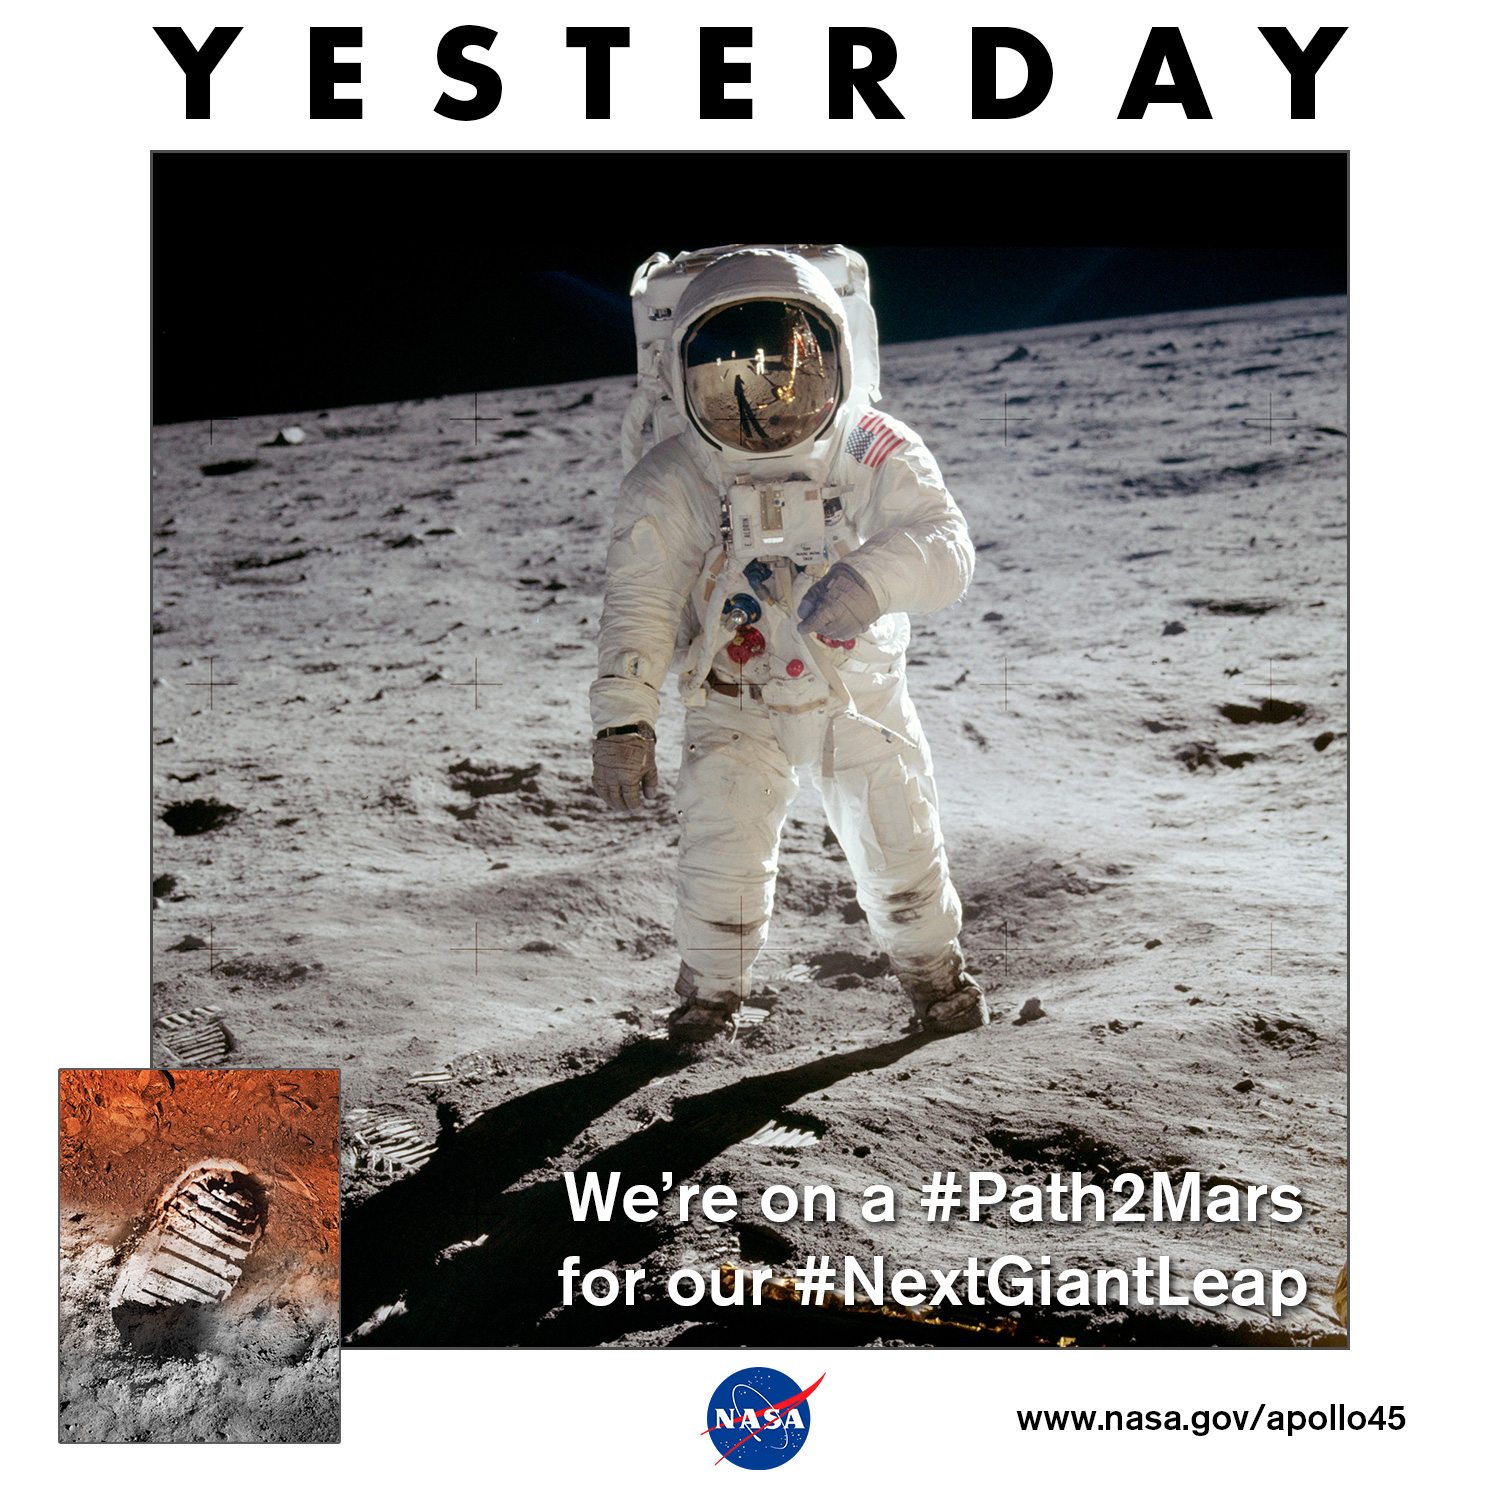 apollo11-yesterday-03